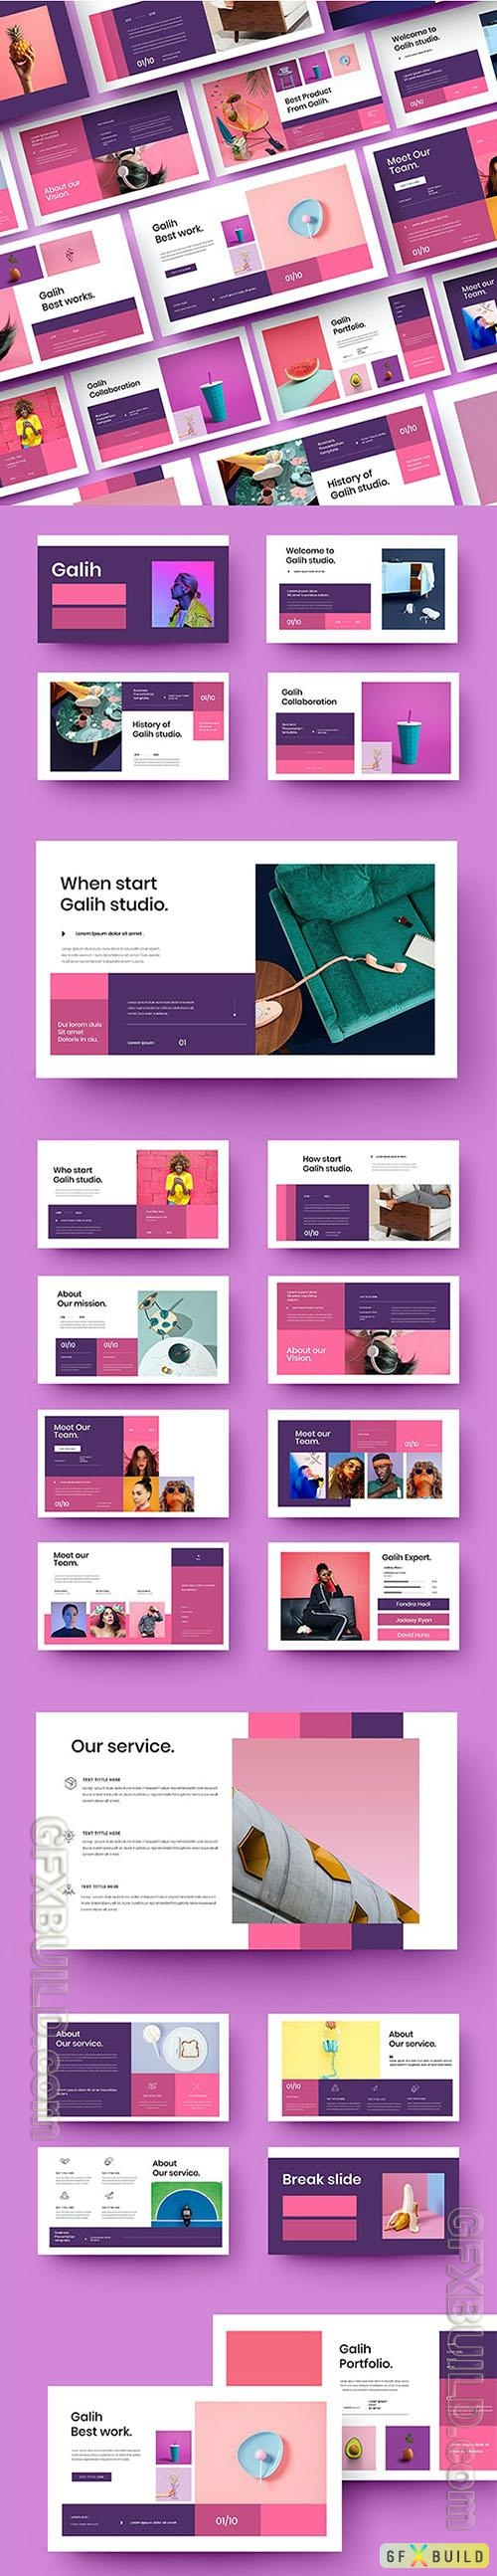 Galih - Business Powerpoint, Keynote and Google Slides Template